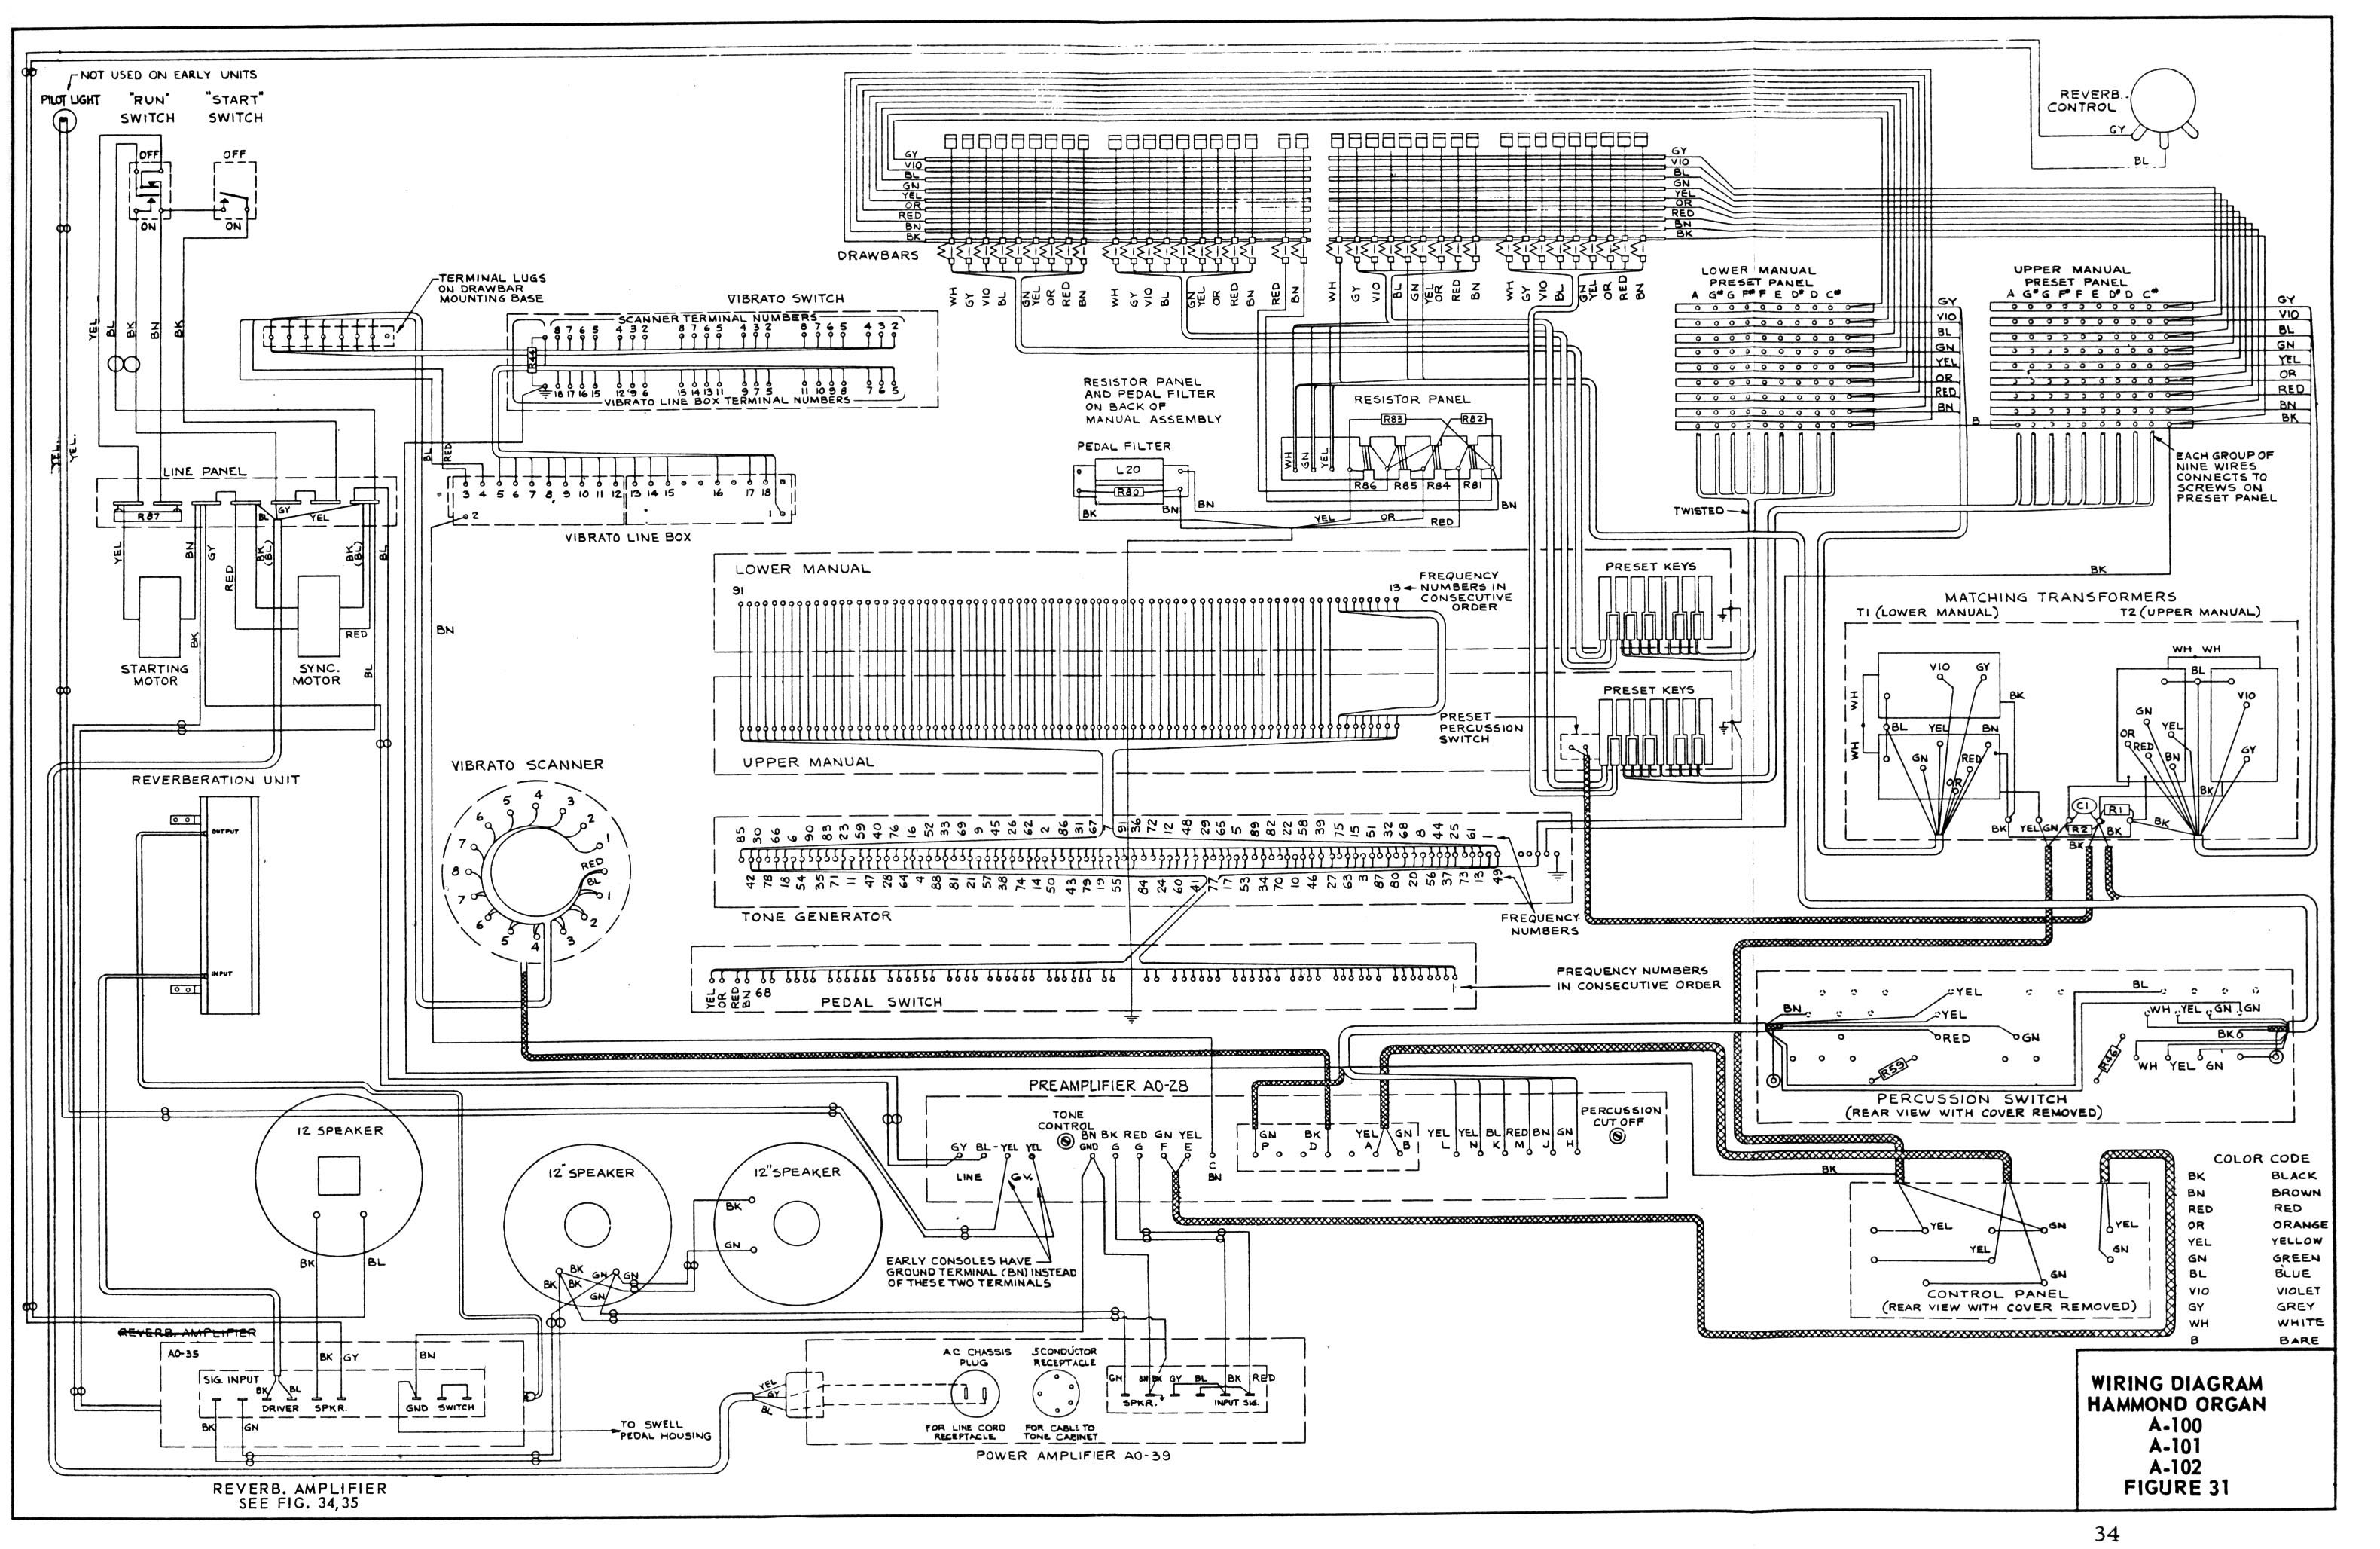 schem2 a 100 service manual hammond transformer wiring diagram at et-consult.org